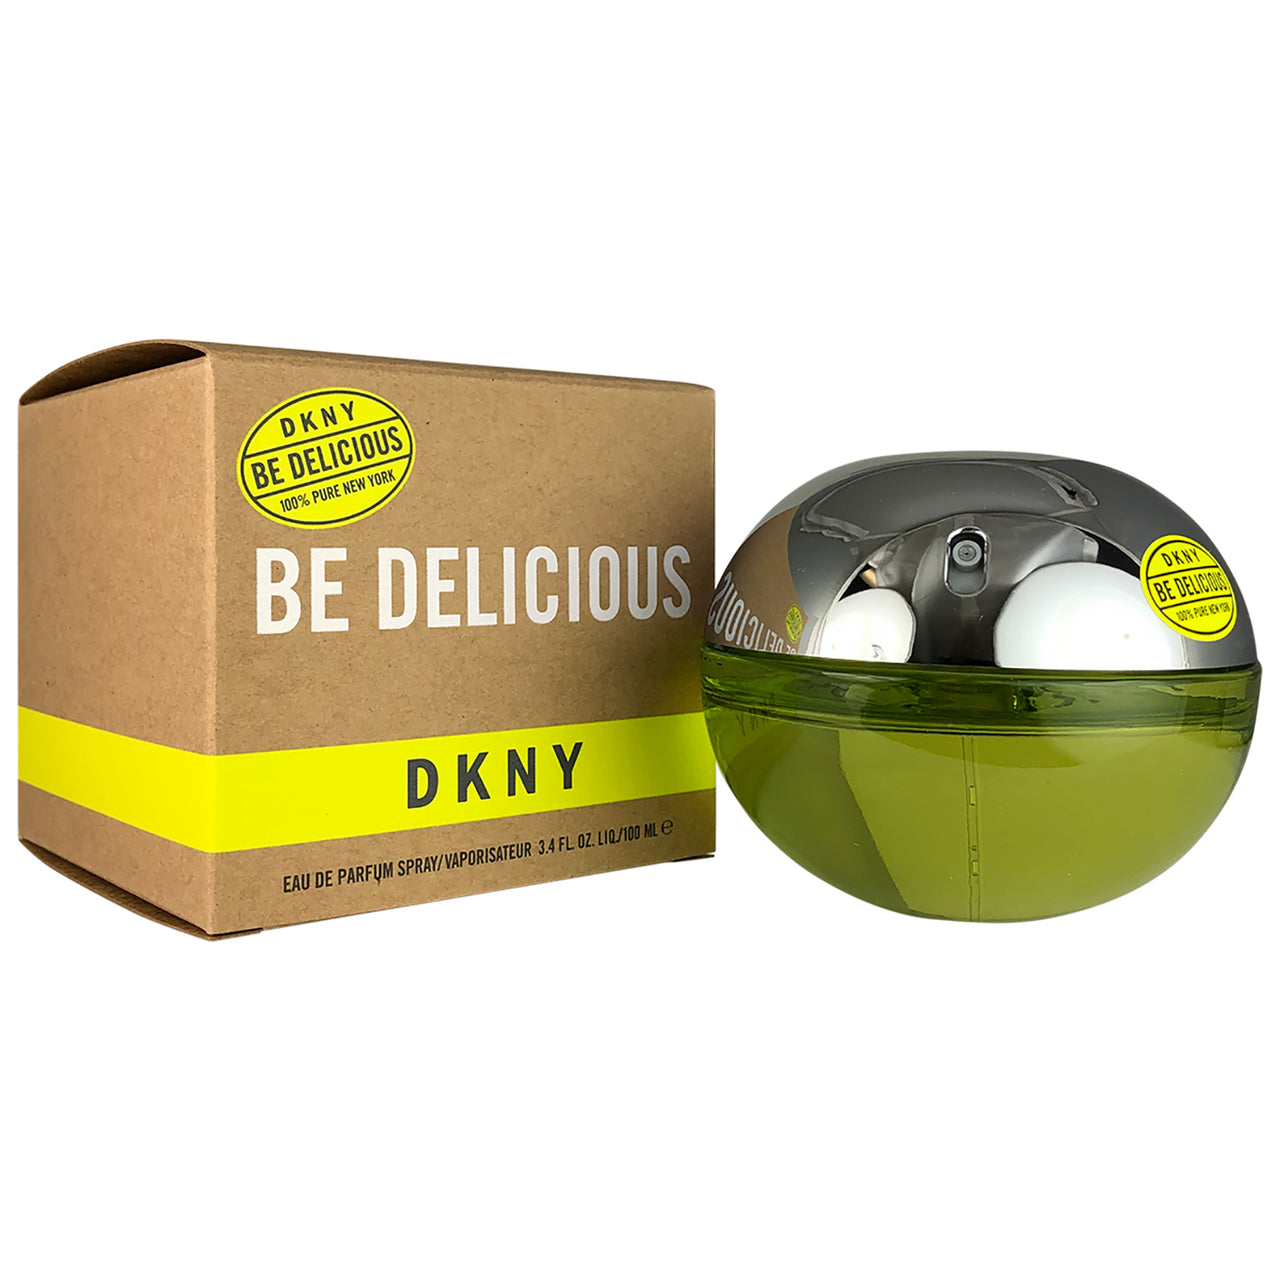 DKNY Be Delicious for Women by Donna Karan 3.3 oz Eau de Parfum Spray